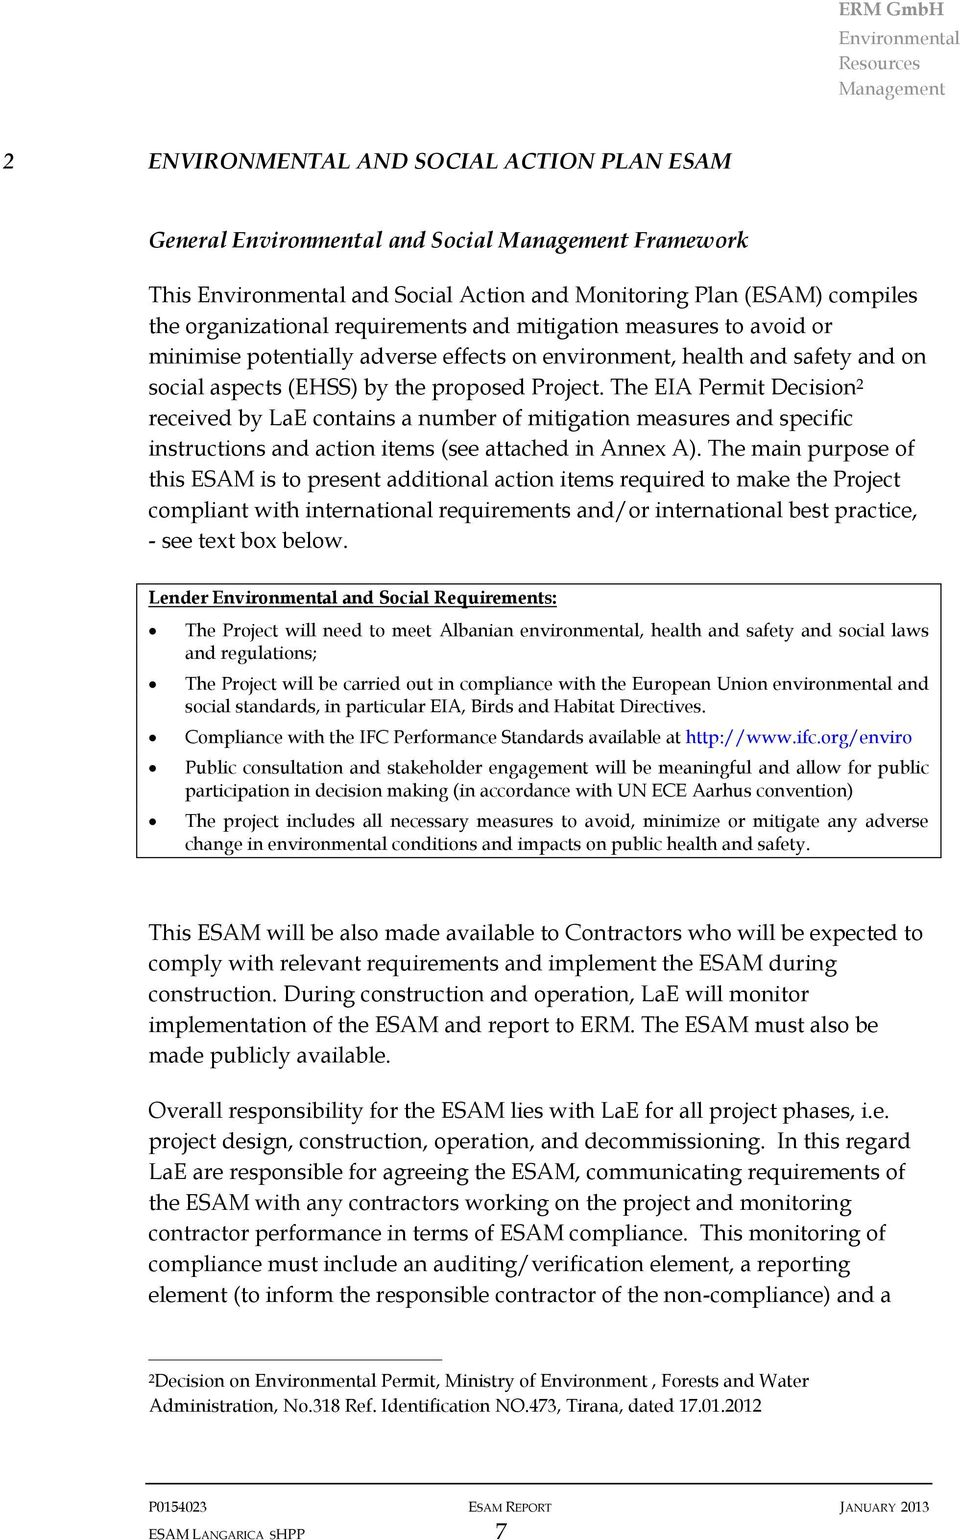 The EIA Permit Decision 2 received by LaE contains a number of mitigation measures and specific instructions and action items (see attached in Annex A).